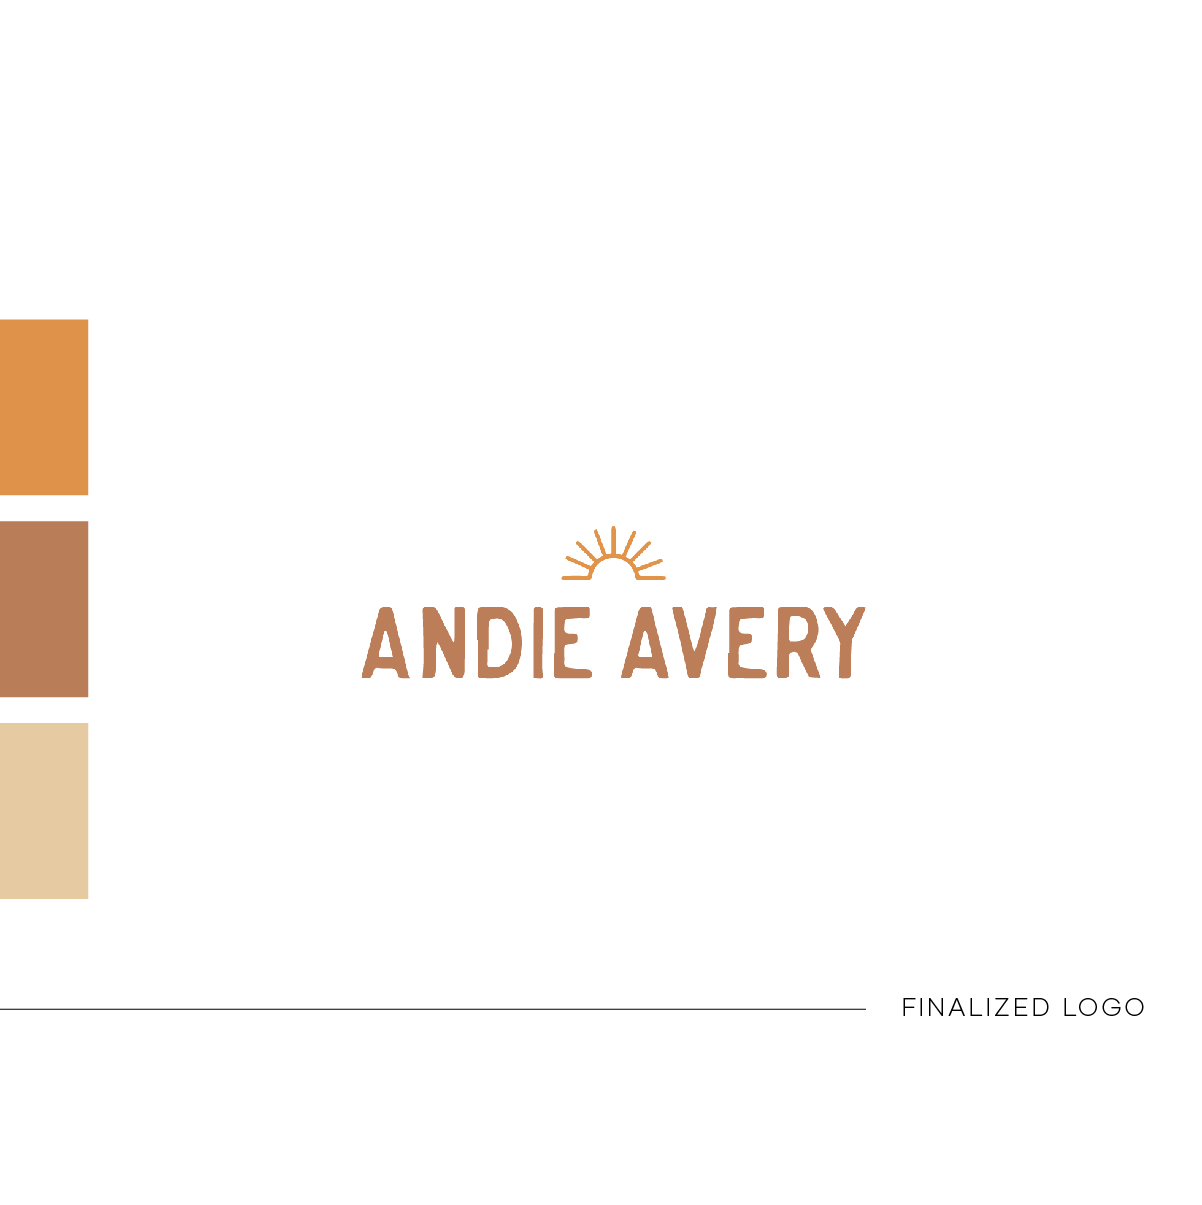 AndieAvery-3.png